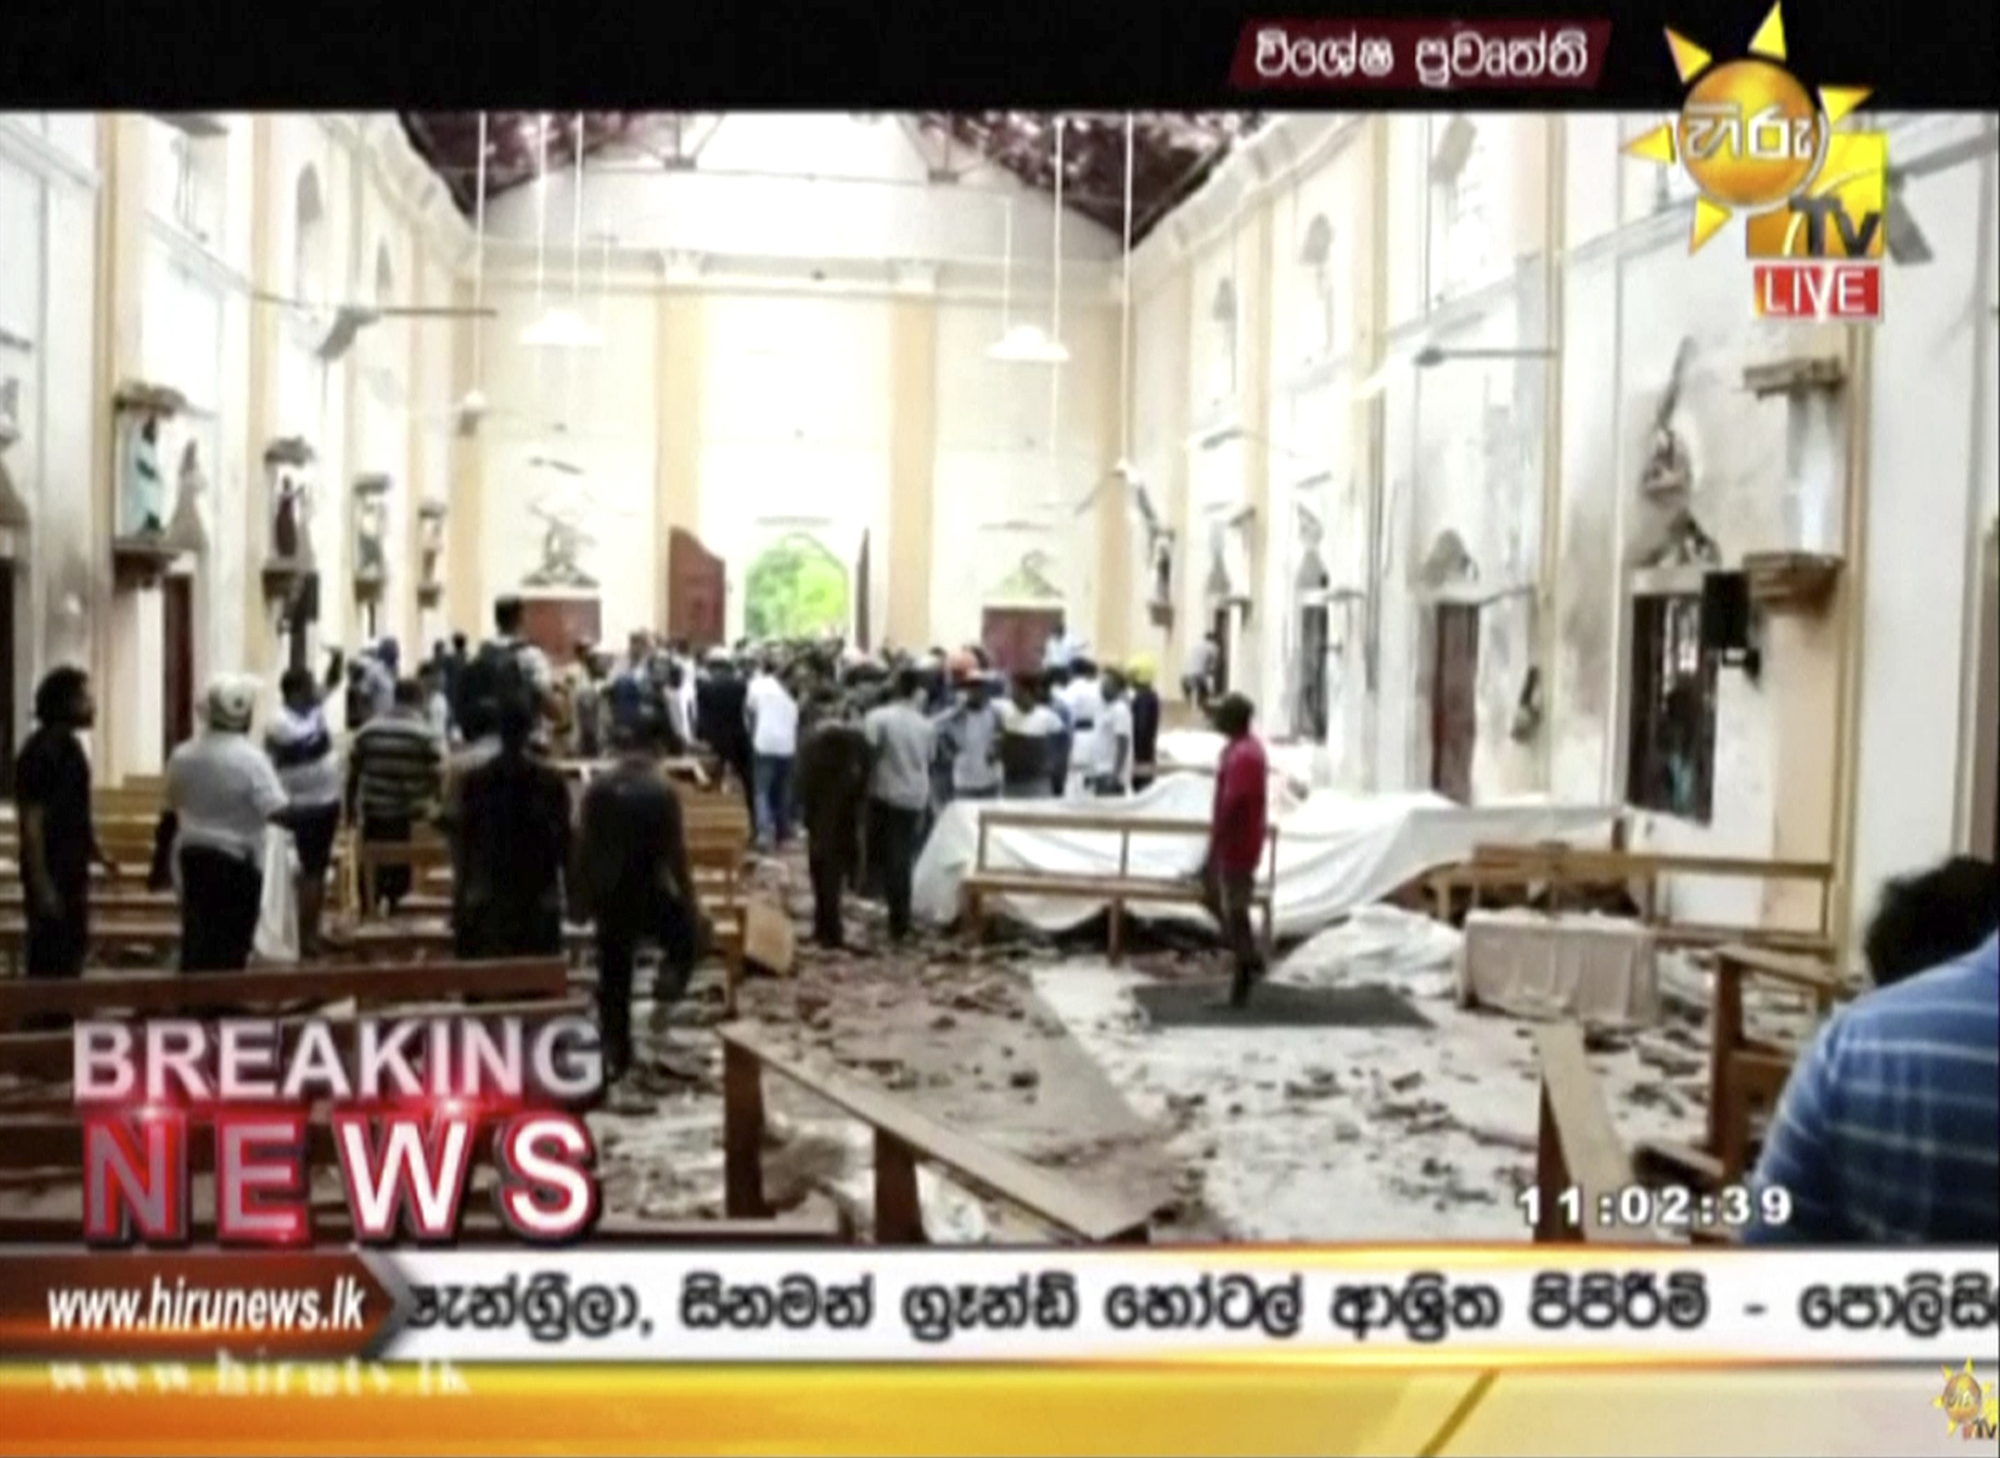 inside of chuch in sri lanka after explosions killed 137 people